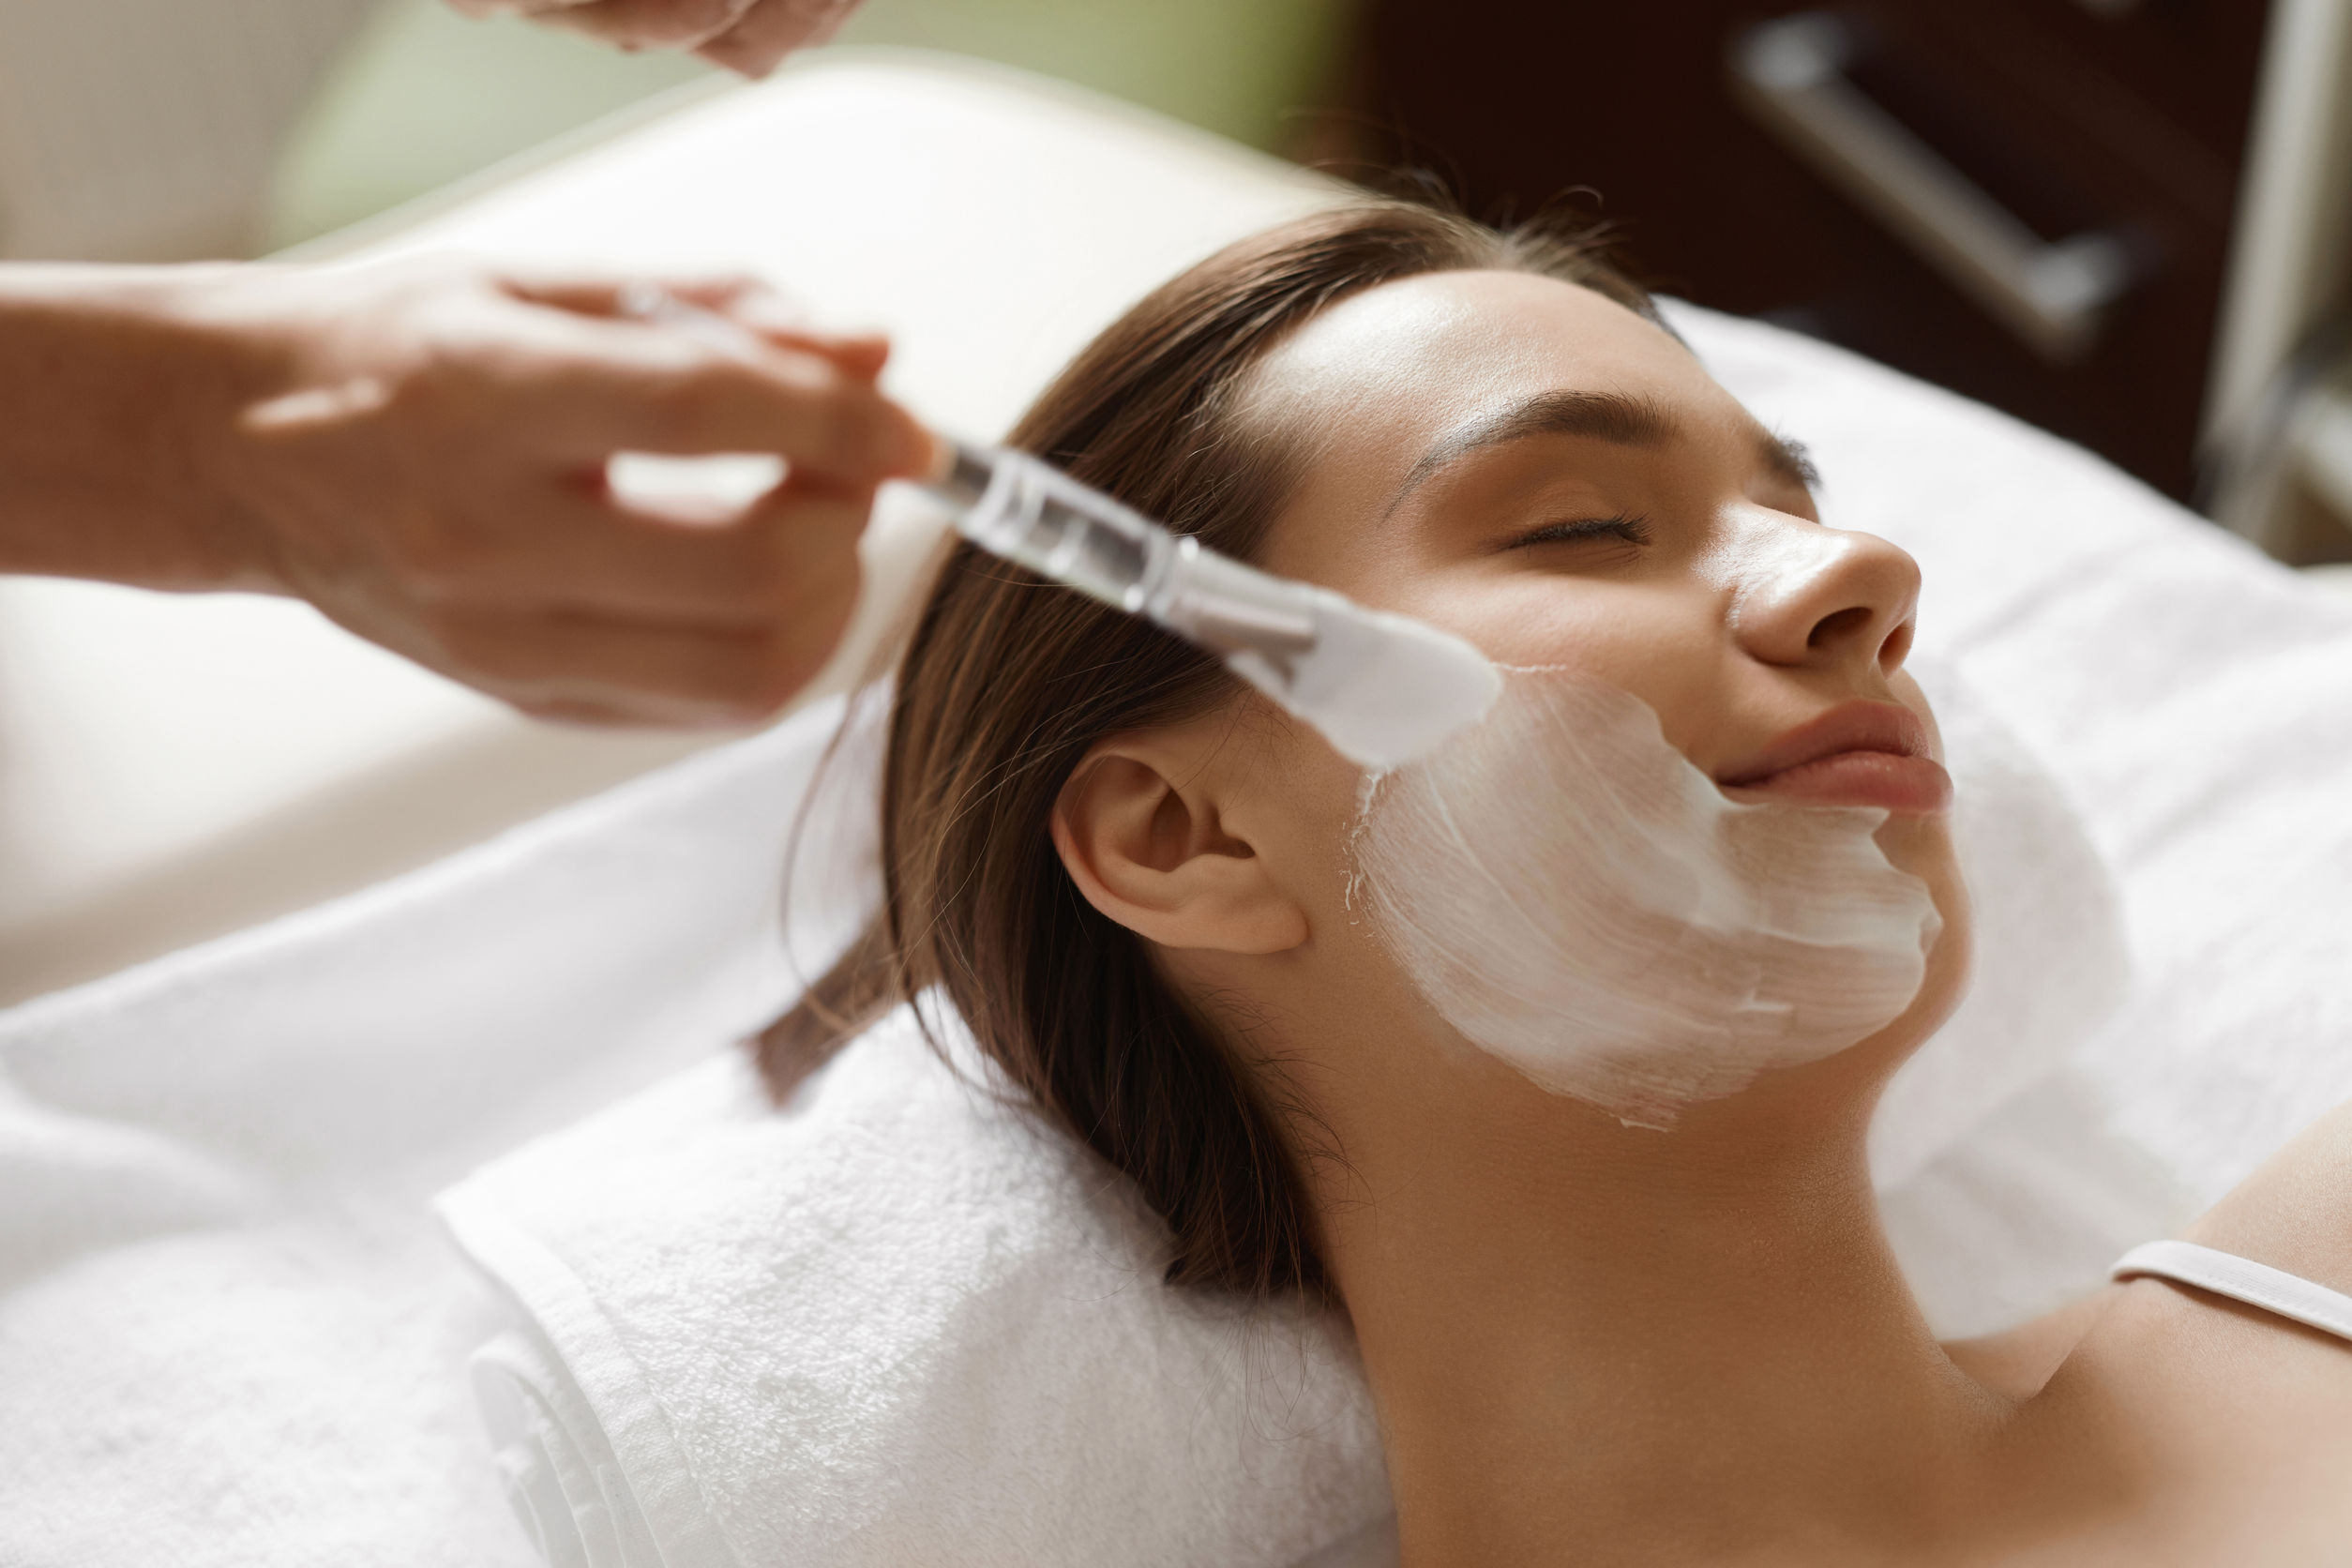 61052501 - skin care. beautiful healthy woman getting cosmetic mask at spa salon. closeup of cosmetologist hands applying mask with brush on females face. facial beauty treatment concept. high resolution image